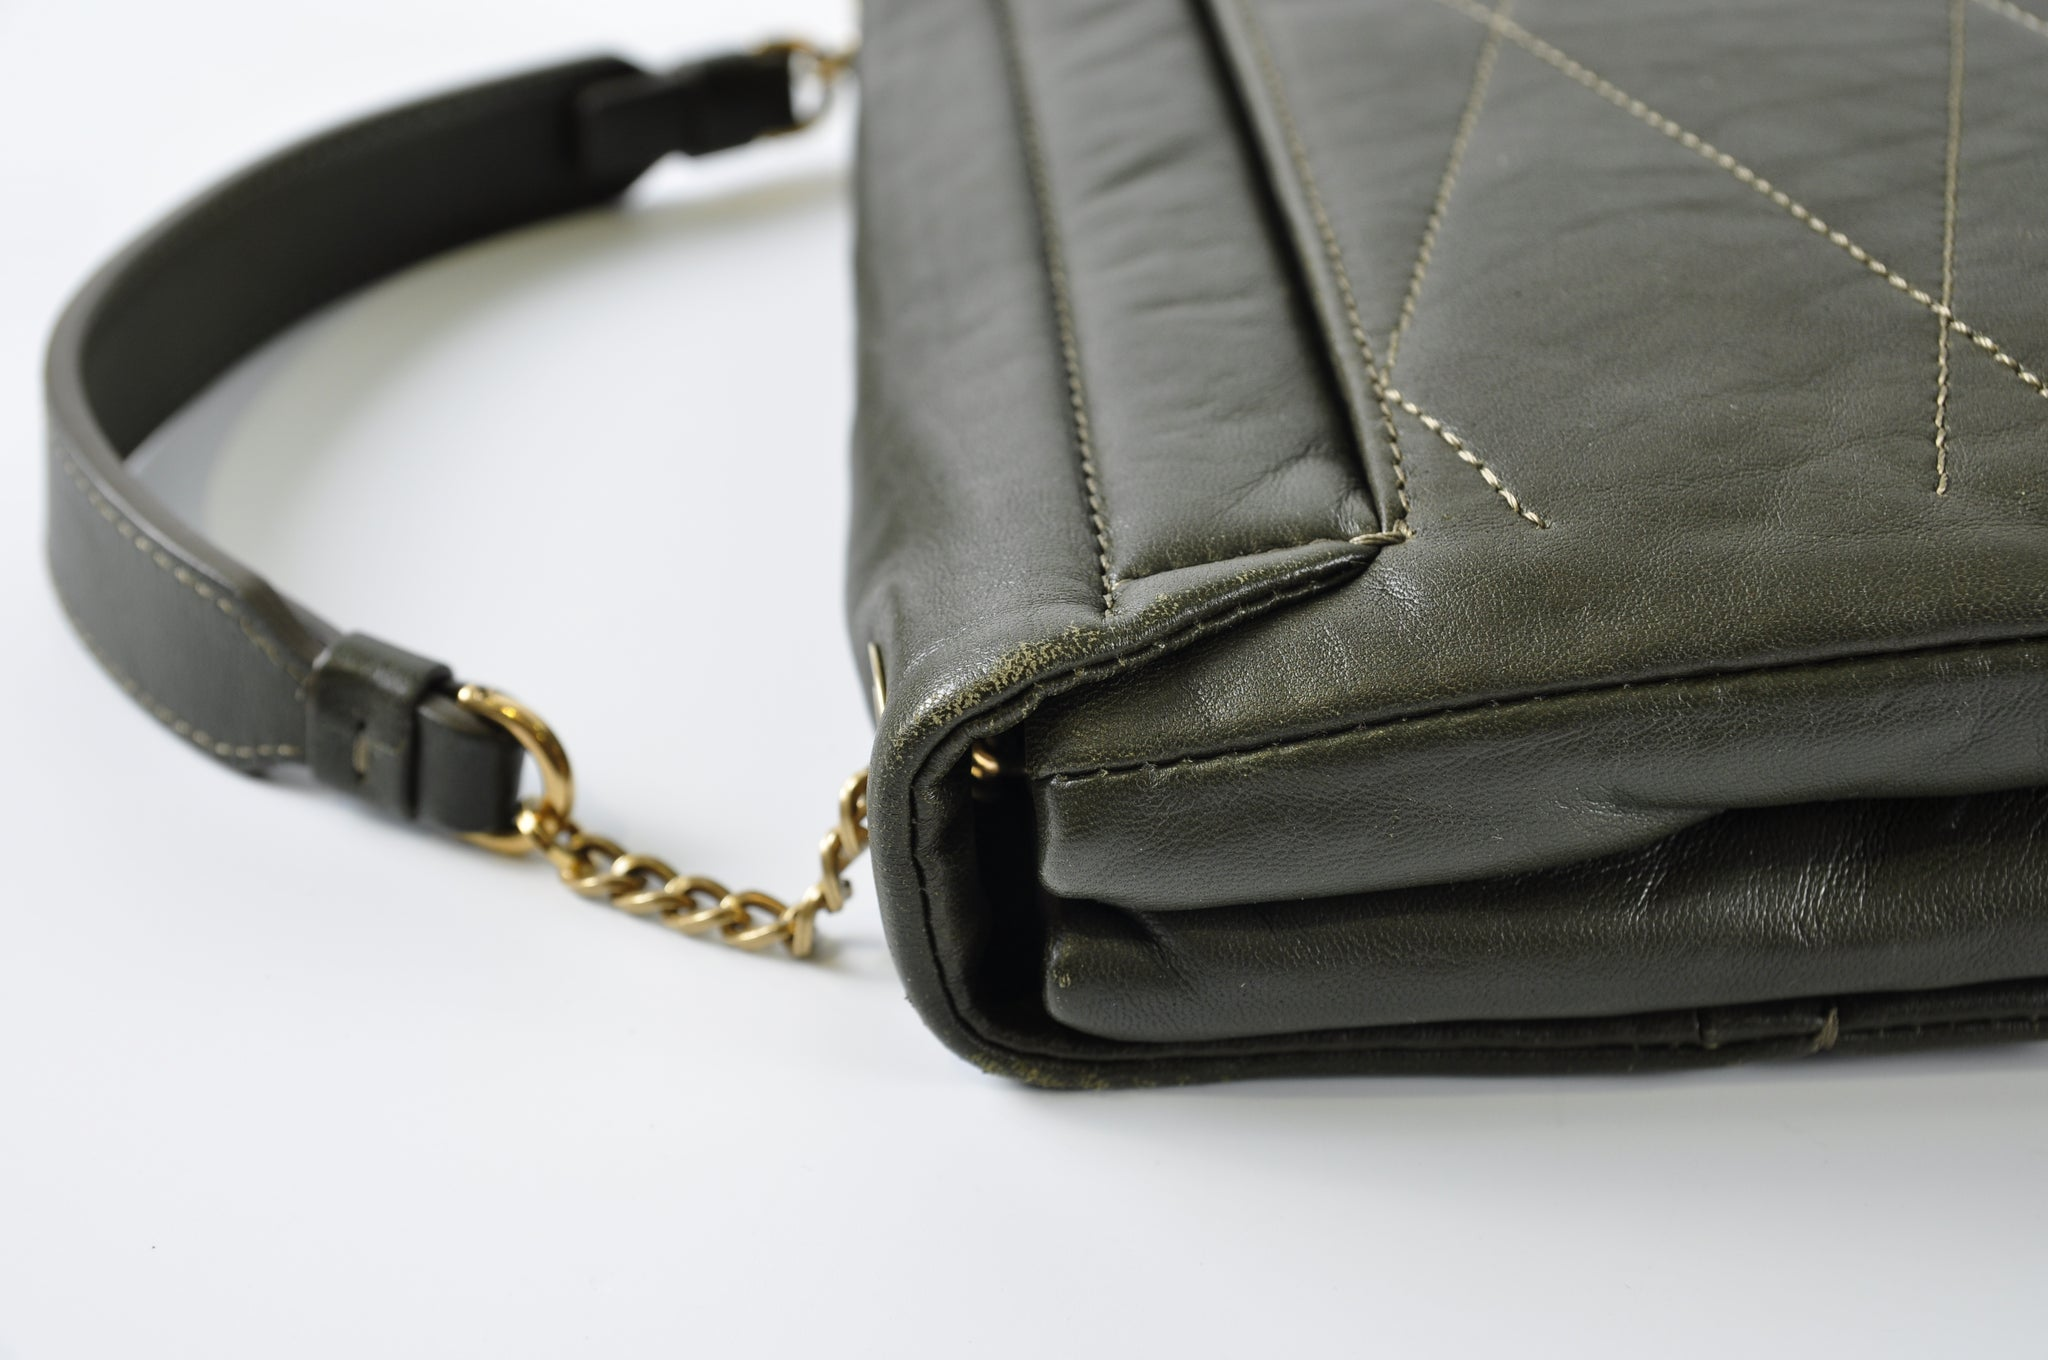 Lanvin Sugar Mini Leather Crossbody Bag in Army Green